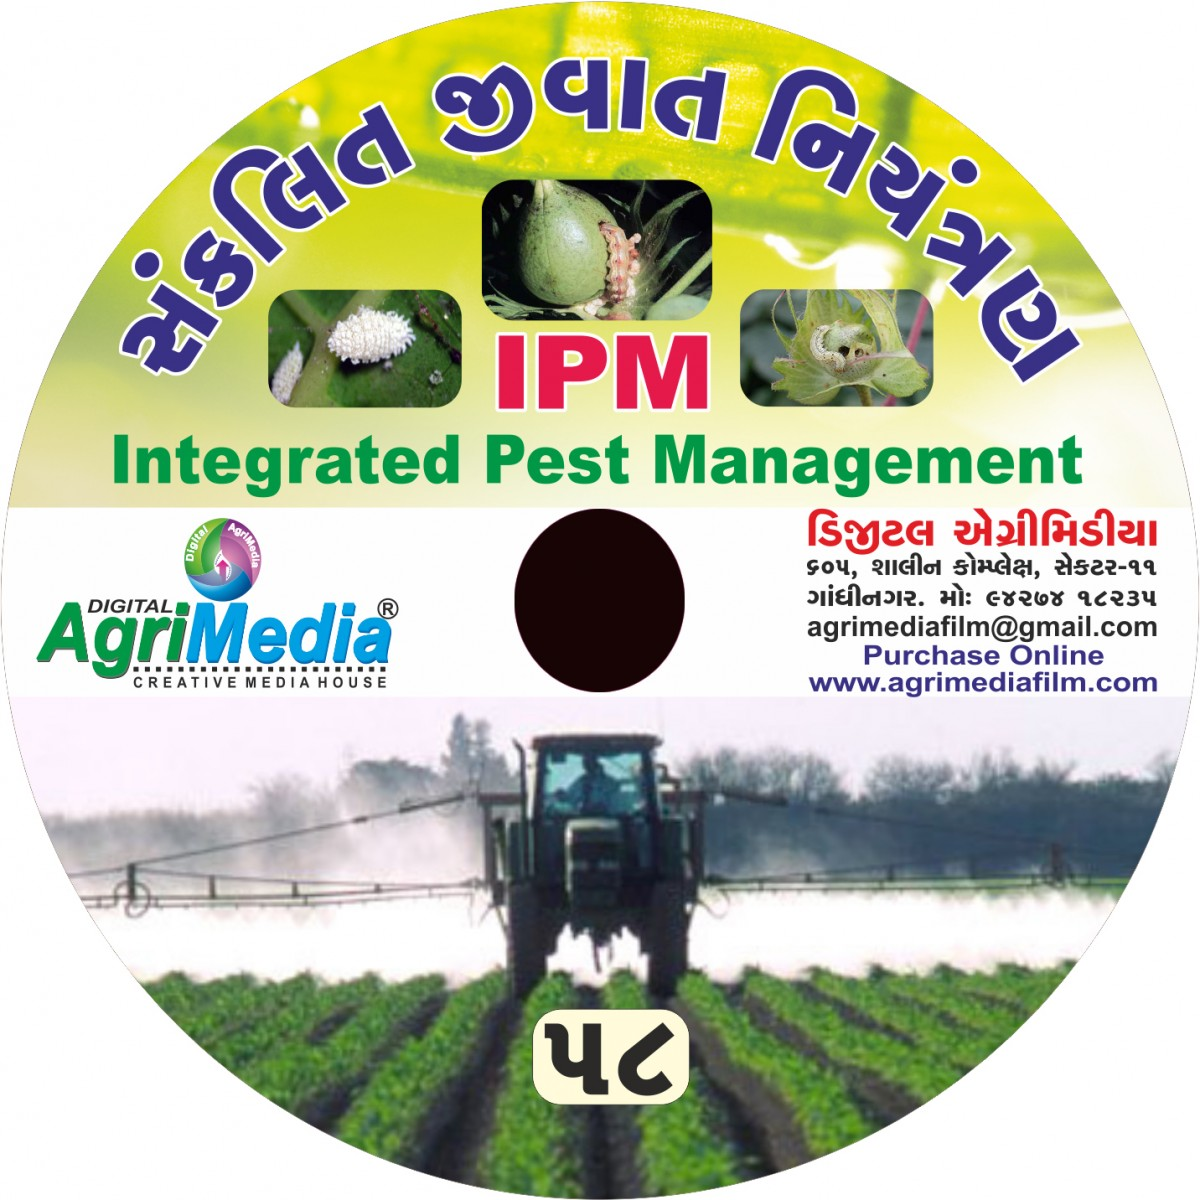 integrated pest management What is integrated pest management there are many definitions that explain what integrated pest management (ipm) is most important is its aim: use biological control when you can, chemical control when you must.